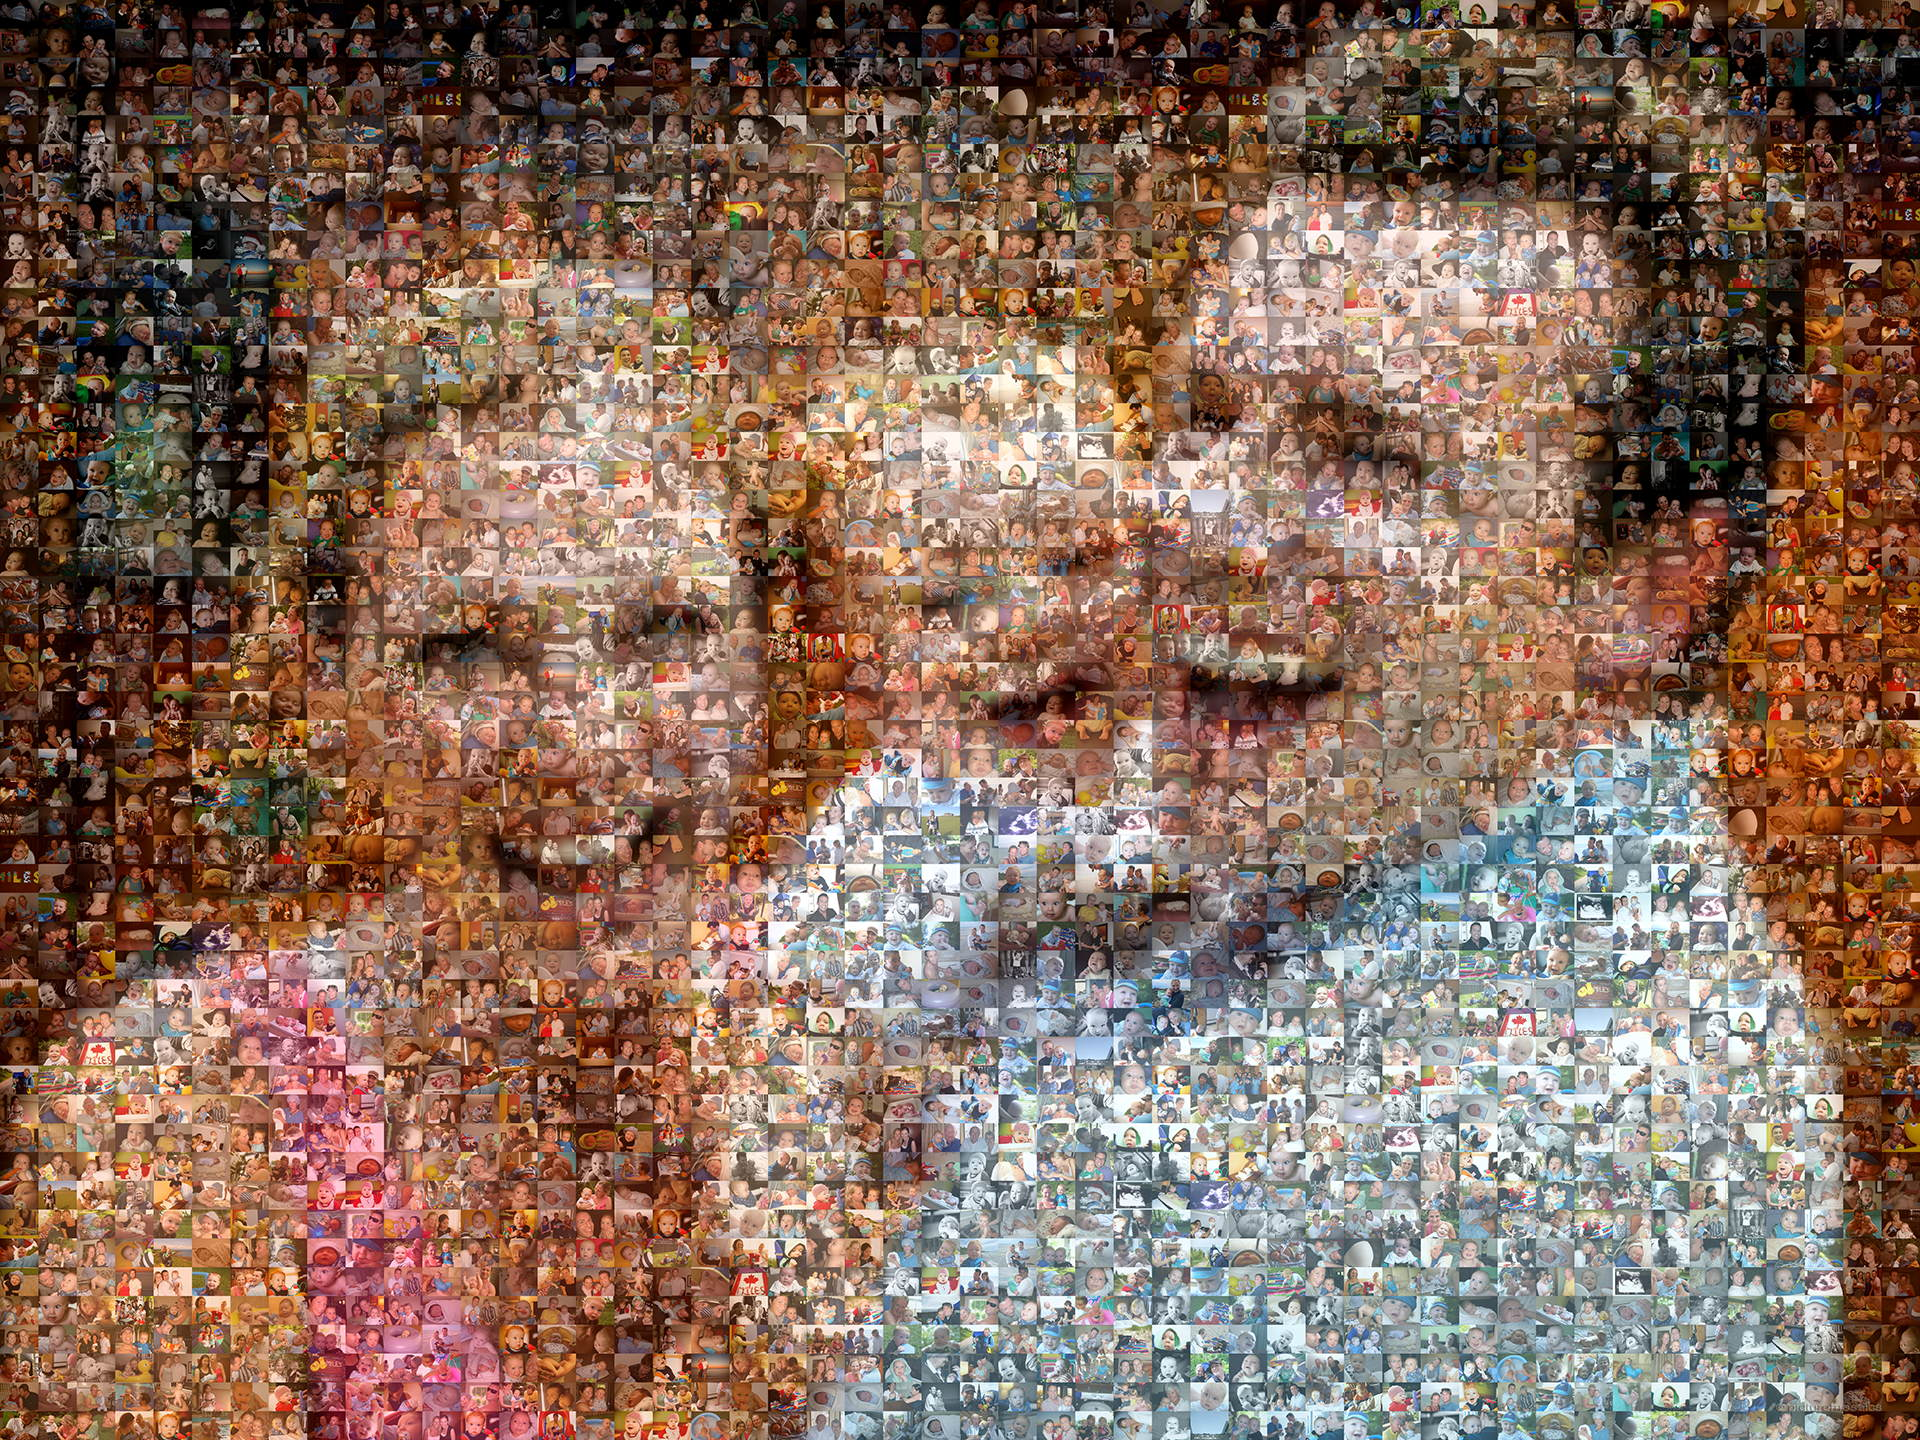 photo mosaic created using 582 family photos